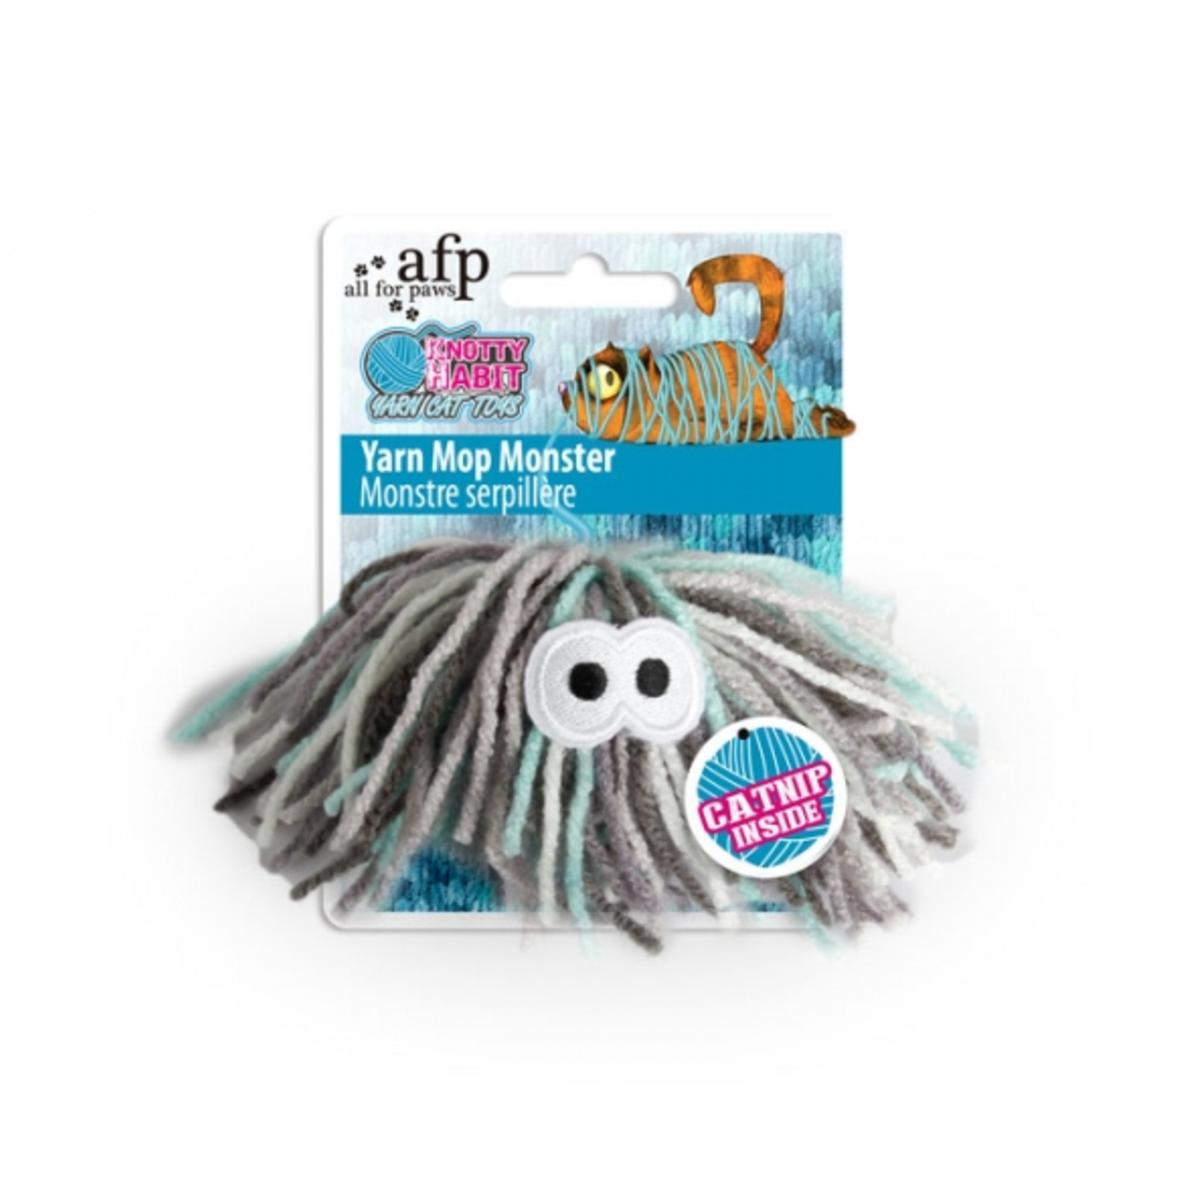 All for Paws Yarn Mop Monster with Catnip 11.5cm